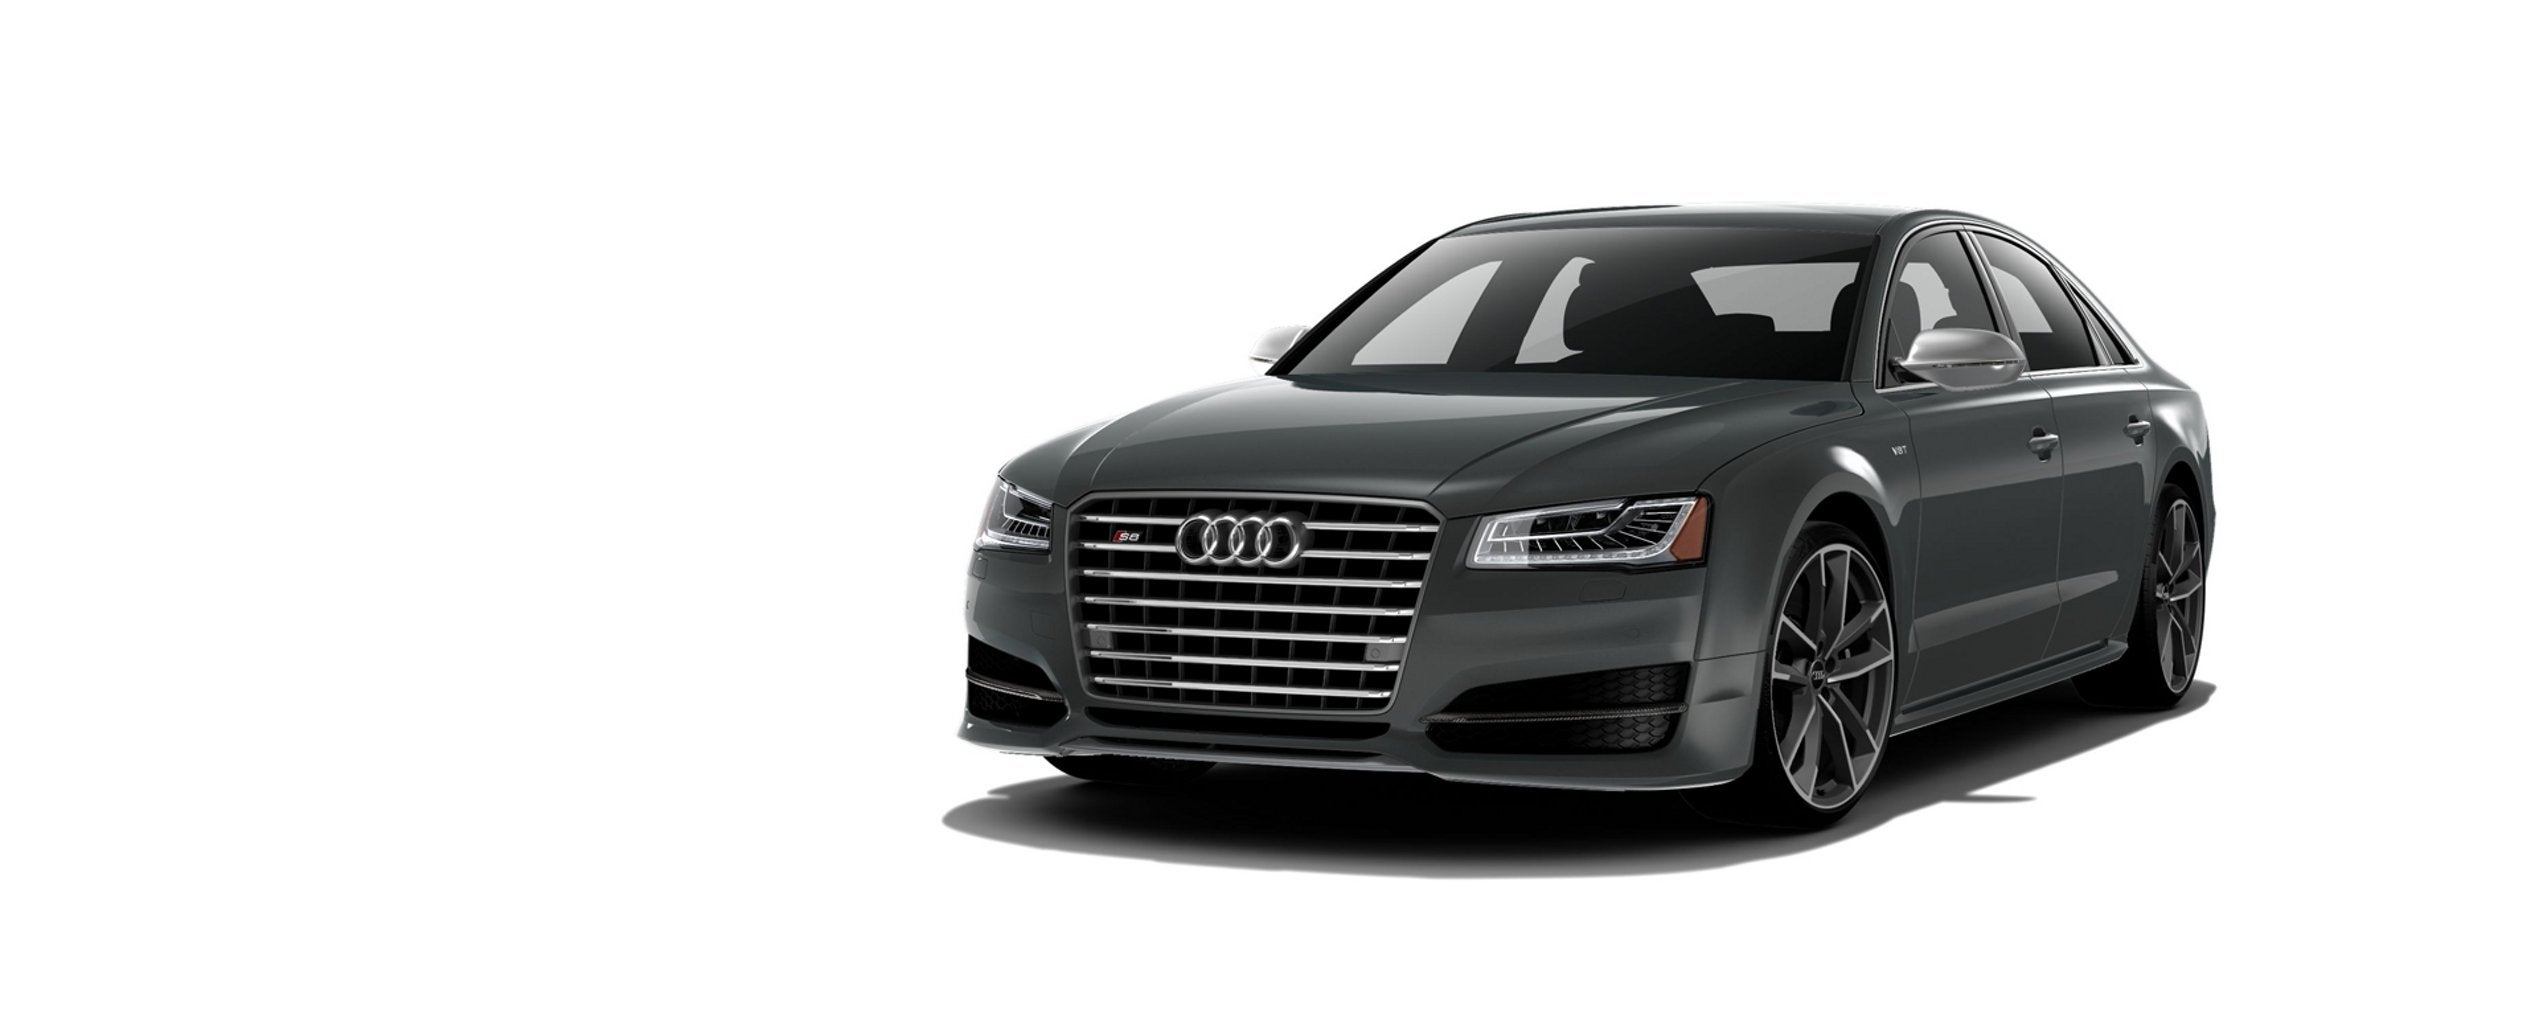 Cars For Sale In Raleigh Nc >> Audi Of Raleigh | New Car Release Information